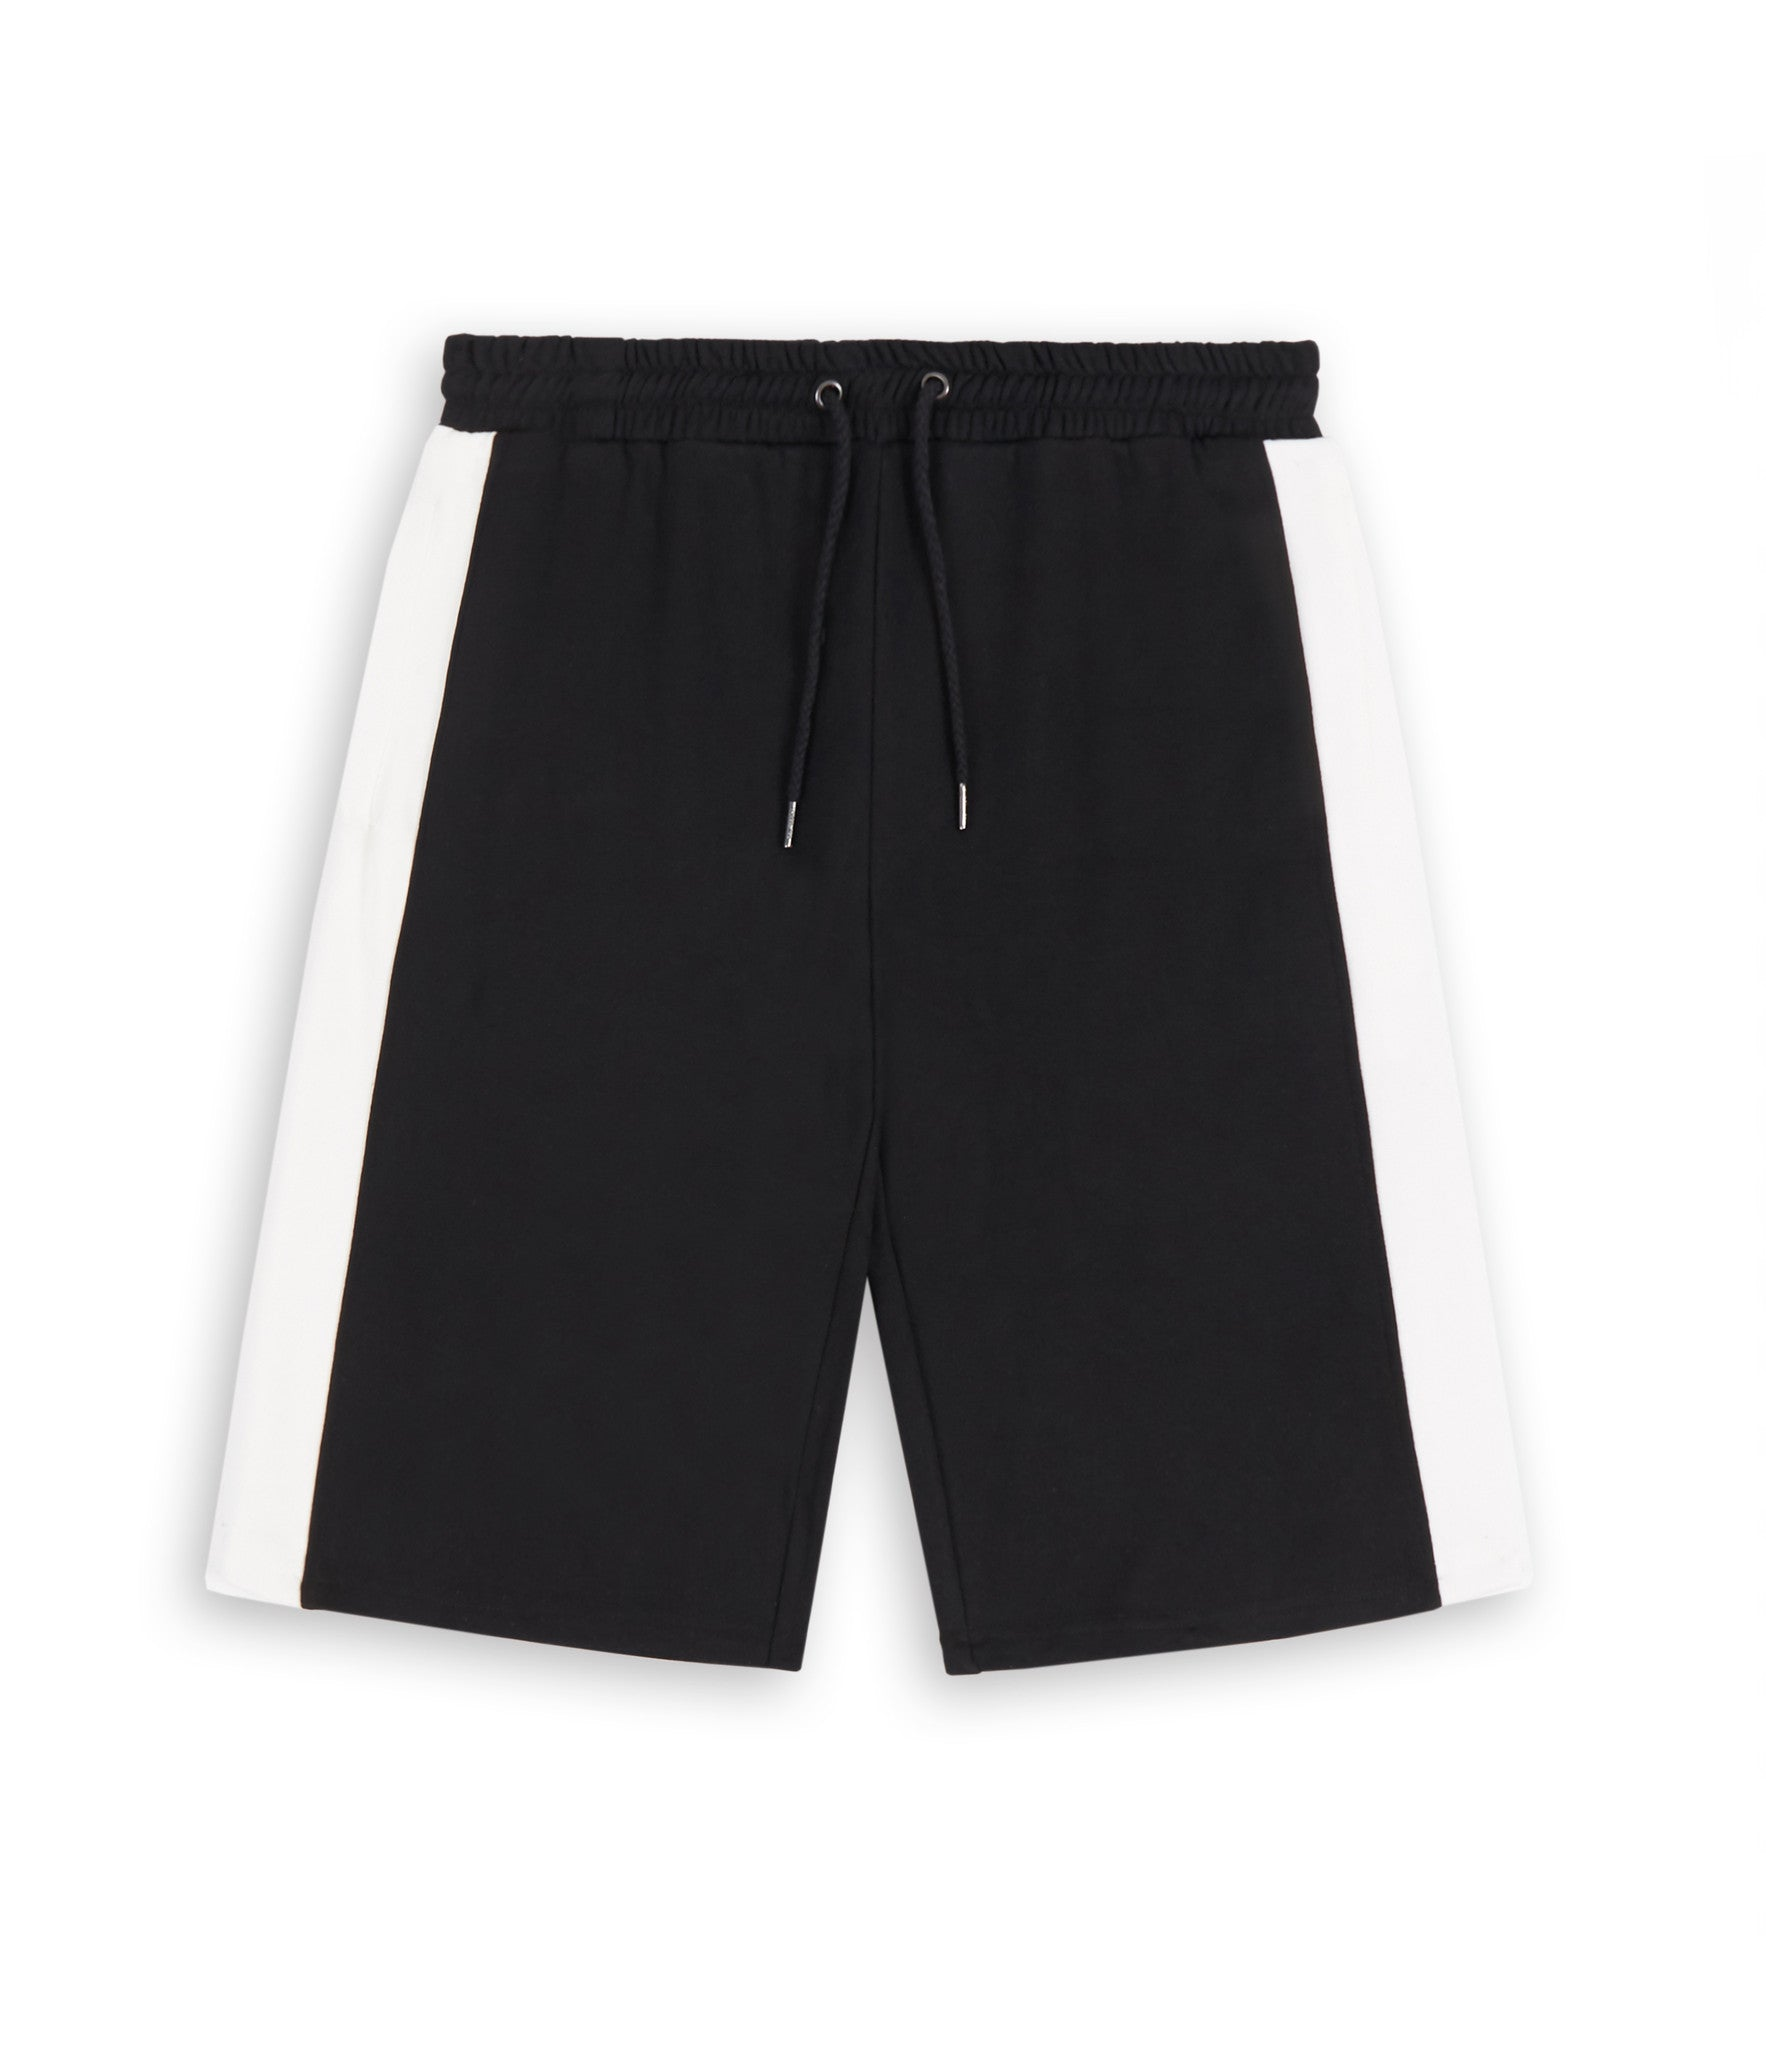 SR214 Panel Shorts - Black - underated london - underatedco - 1